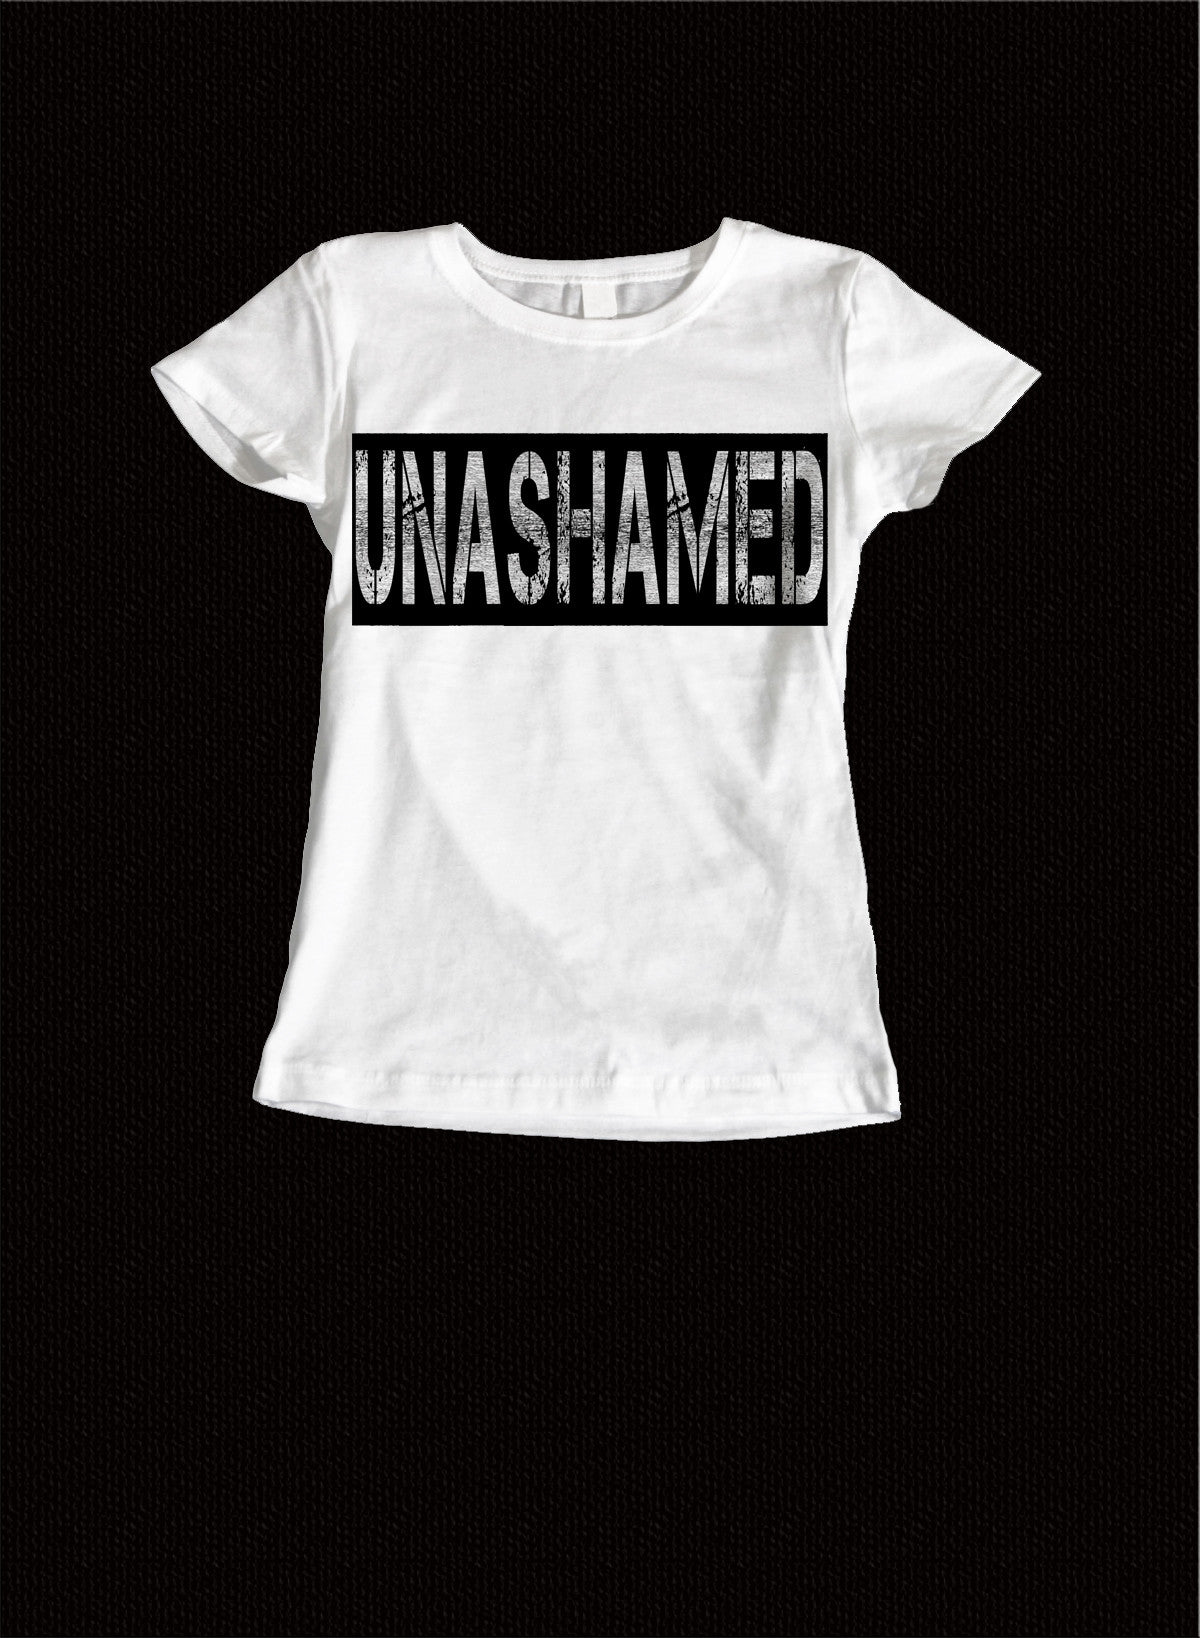 Unashamed Ladies Tee